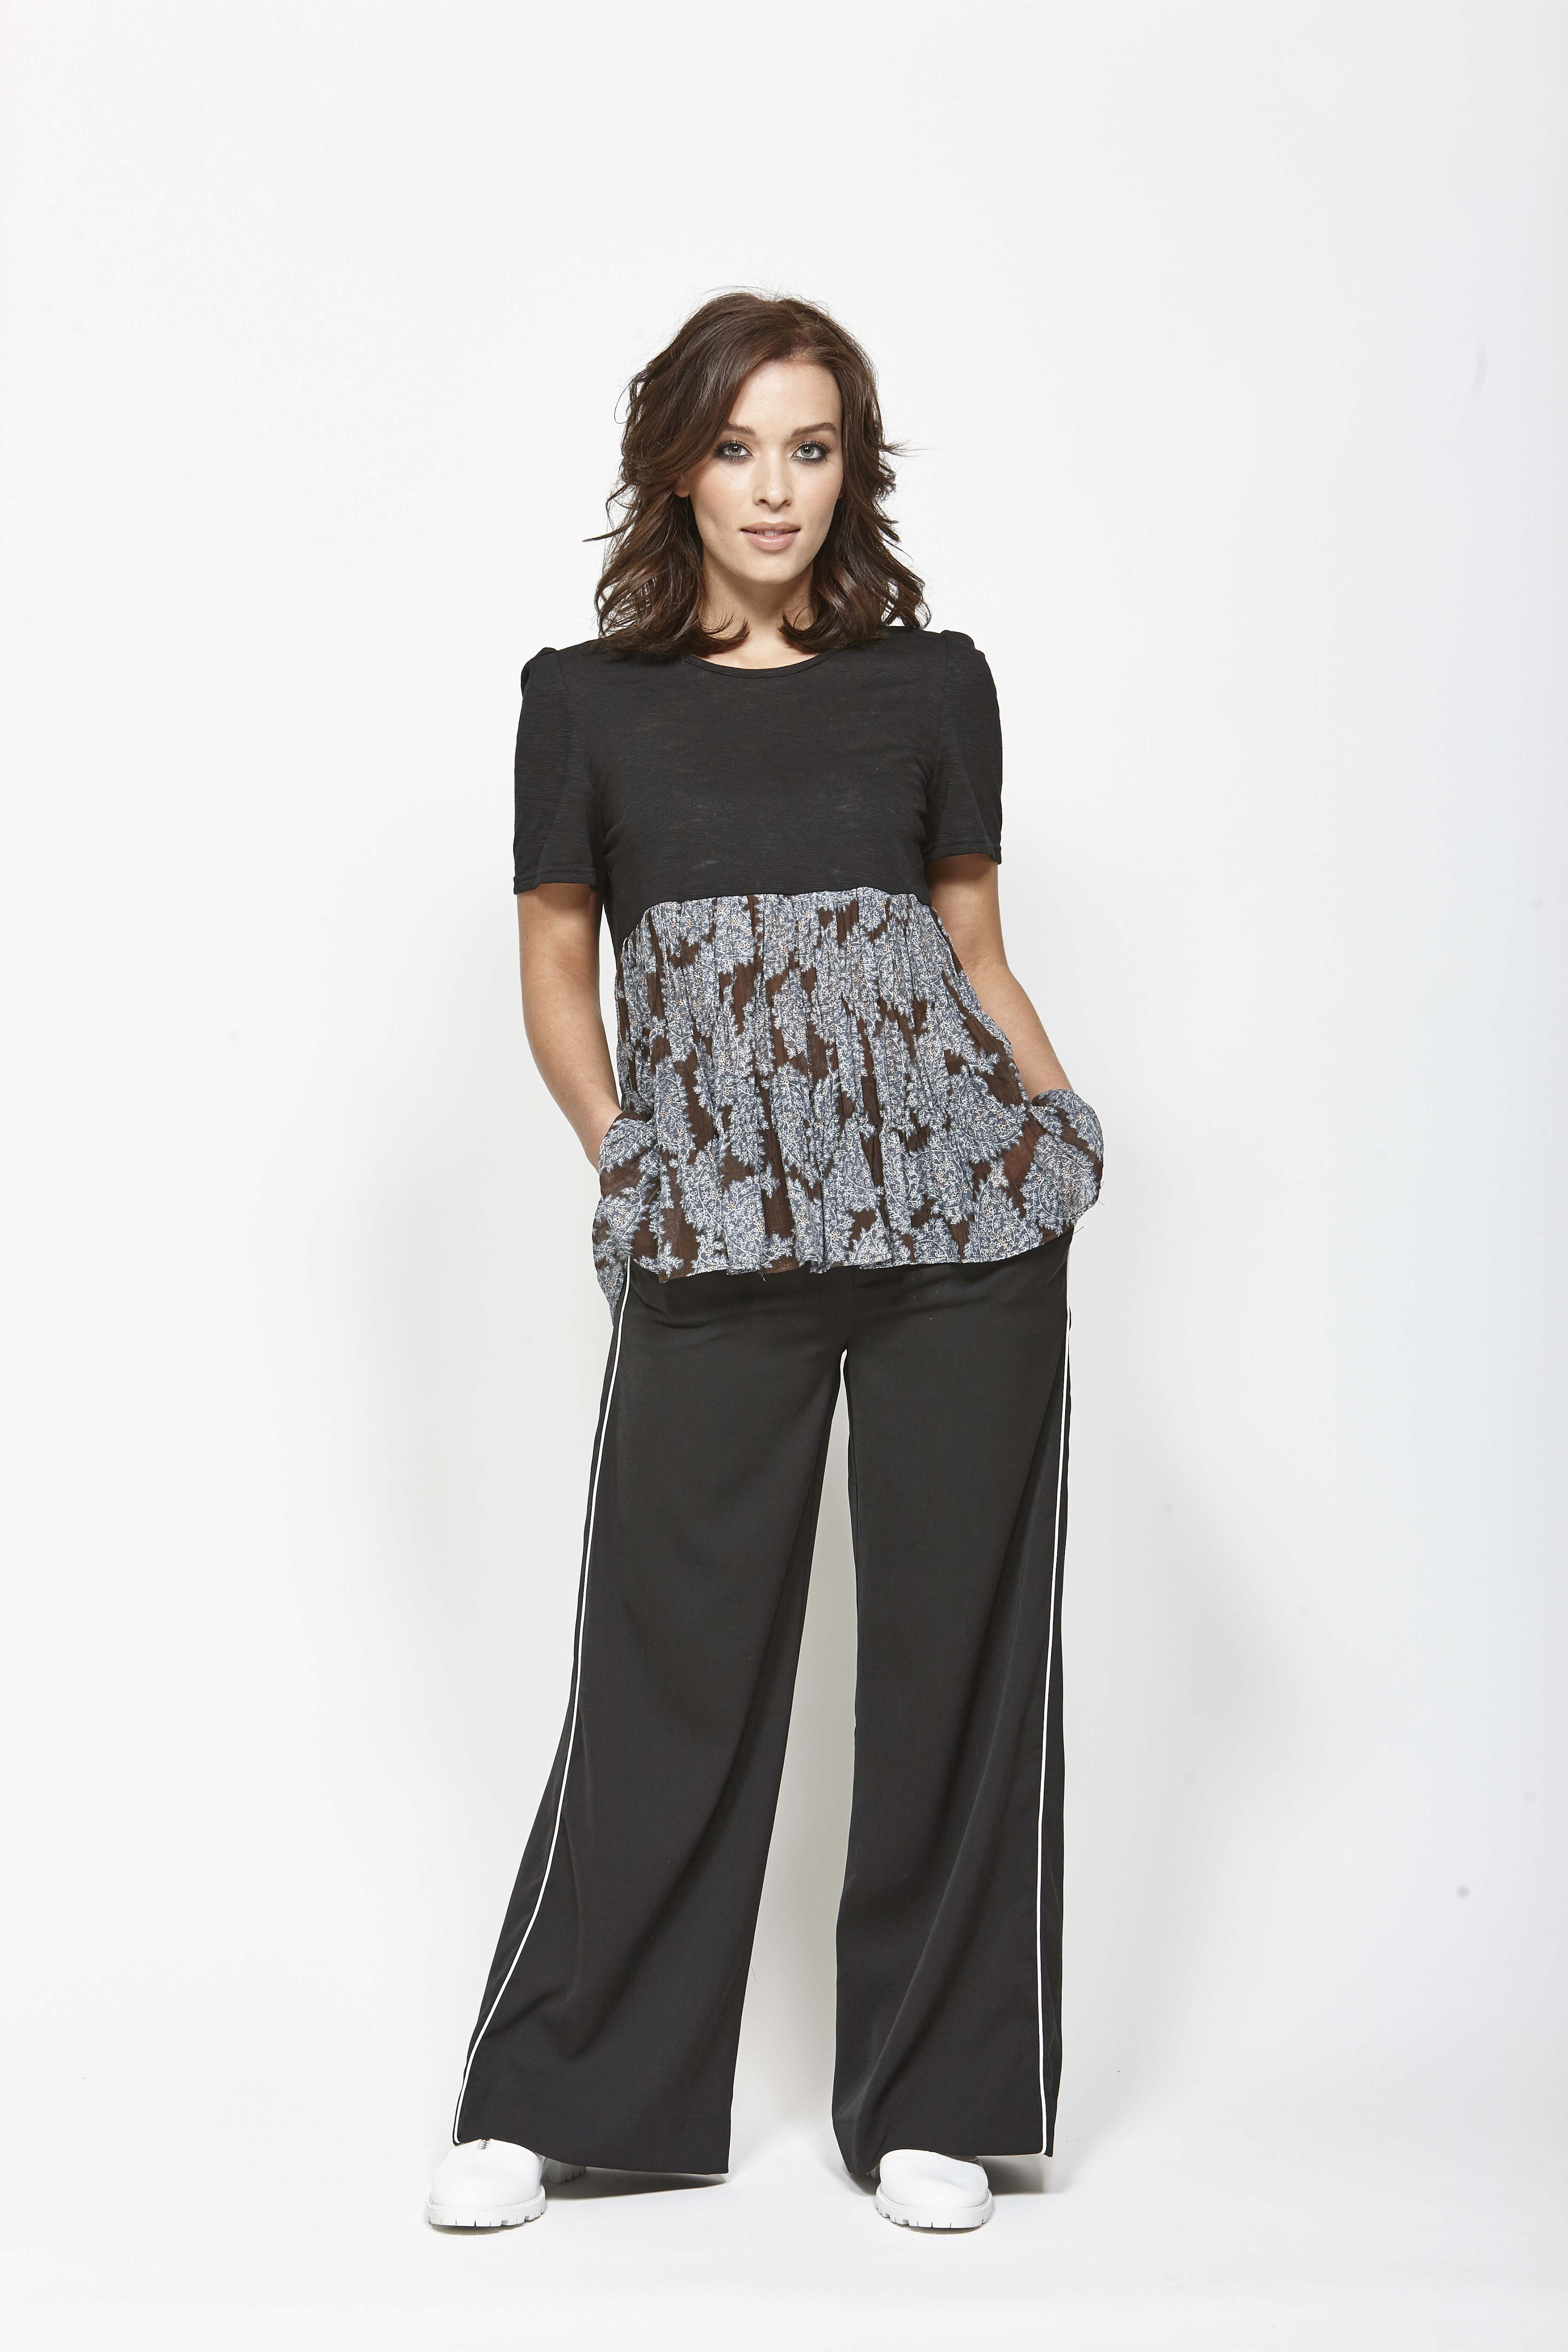 LEO+BE LB1364 Signal Top, RRP$115.00 & LEO+BE LB1373 Float Pant, RRP$159.00